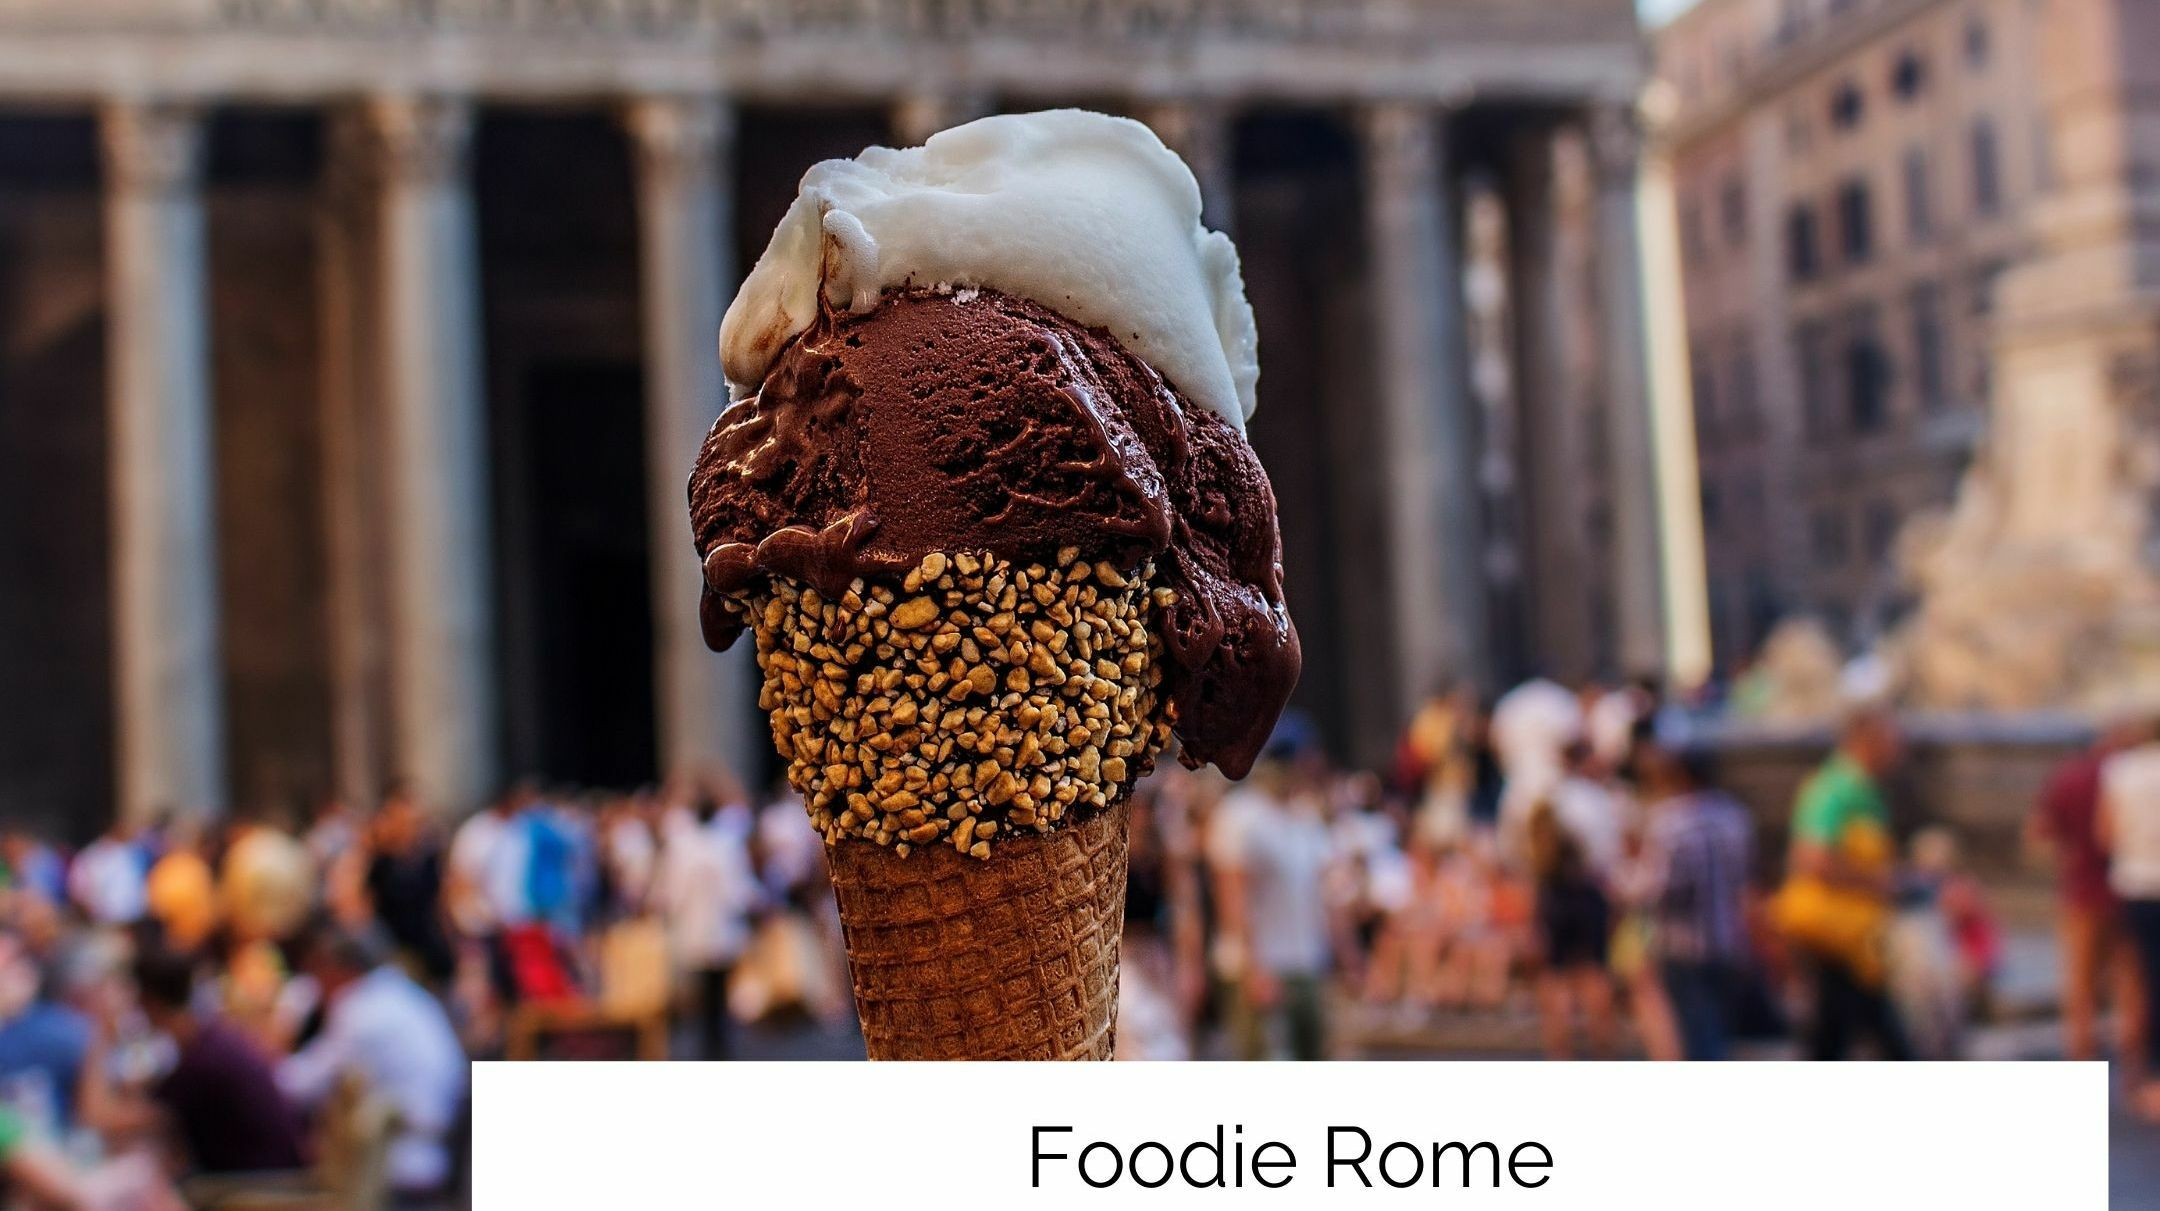 Foodie Rome: A Virtual Tour to the Tasty Side of the City!